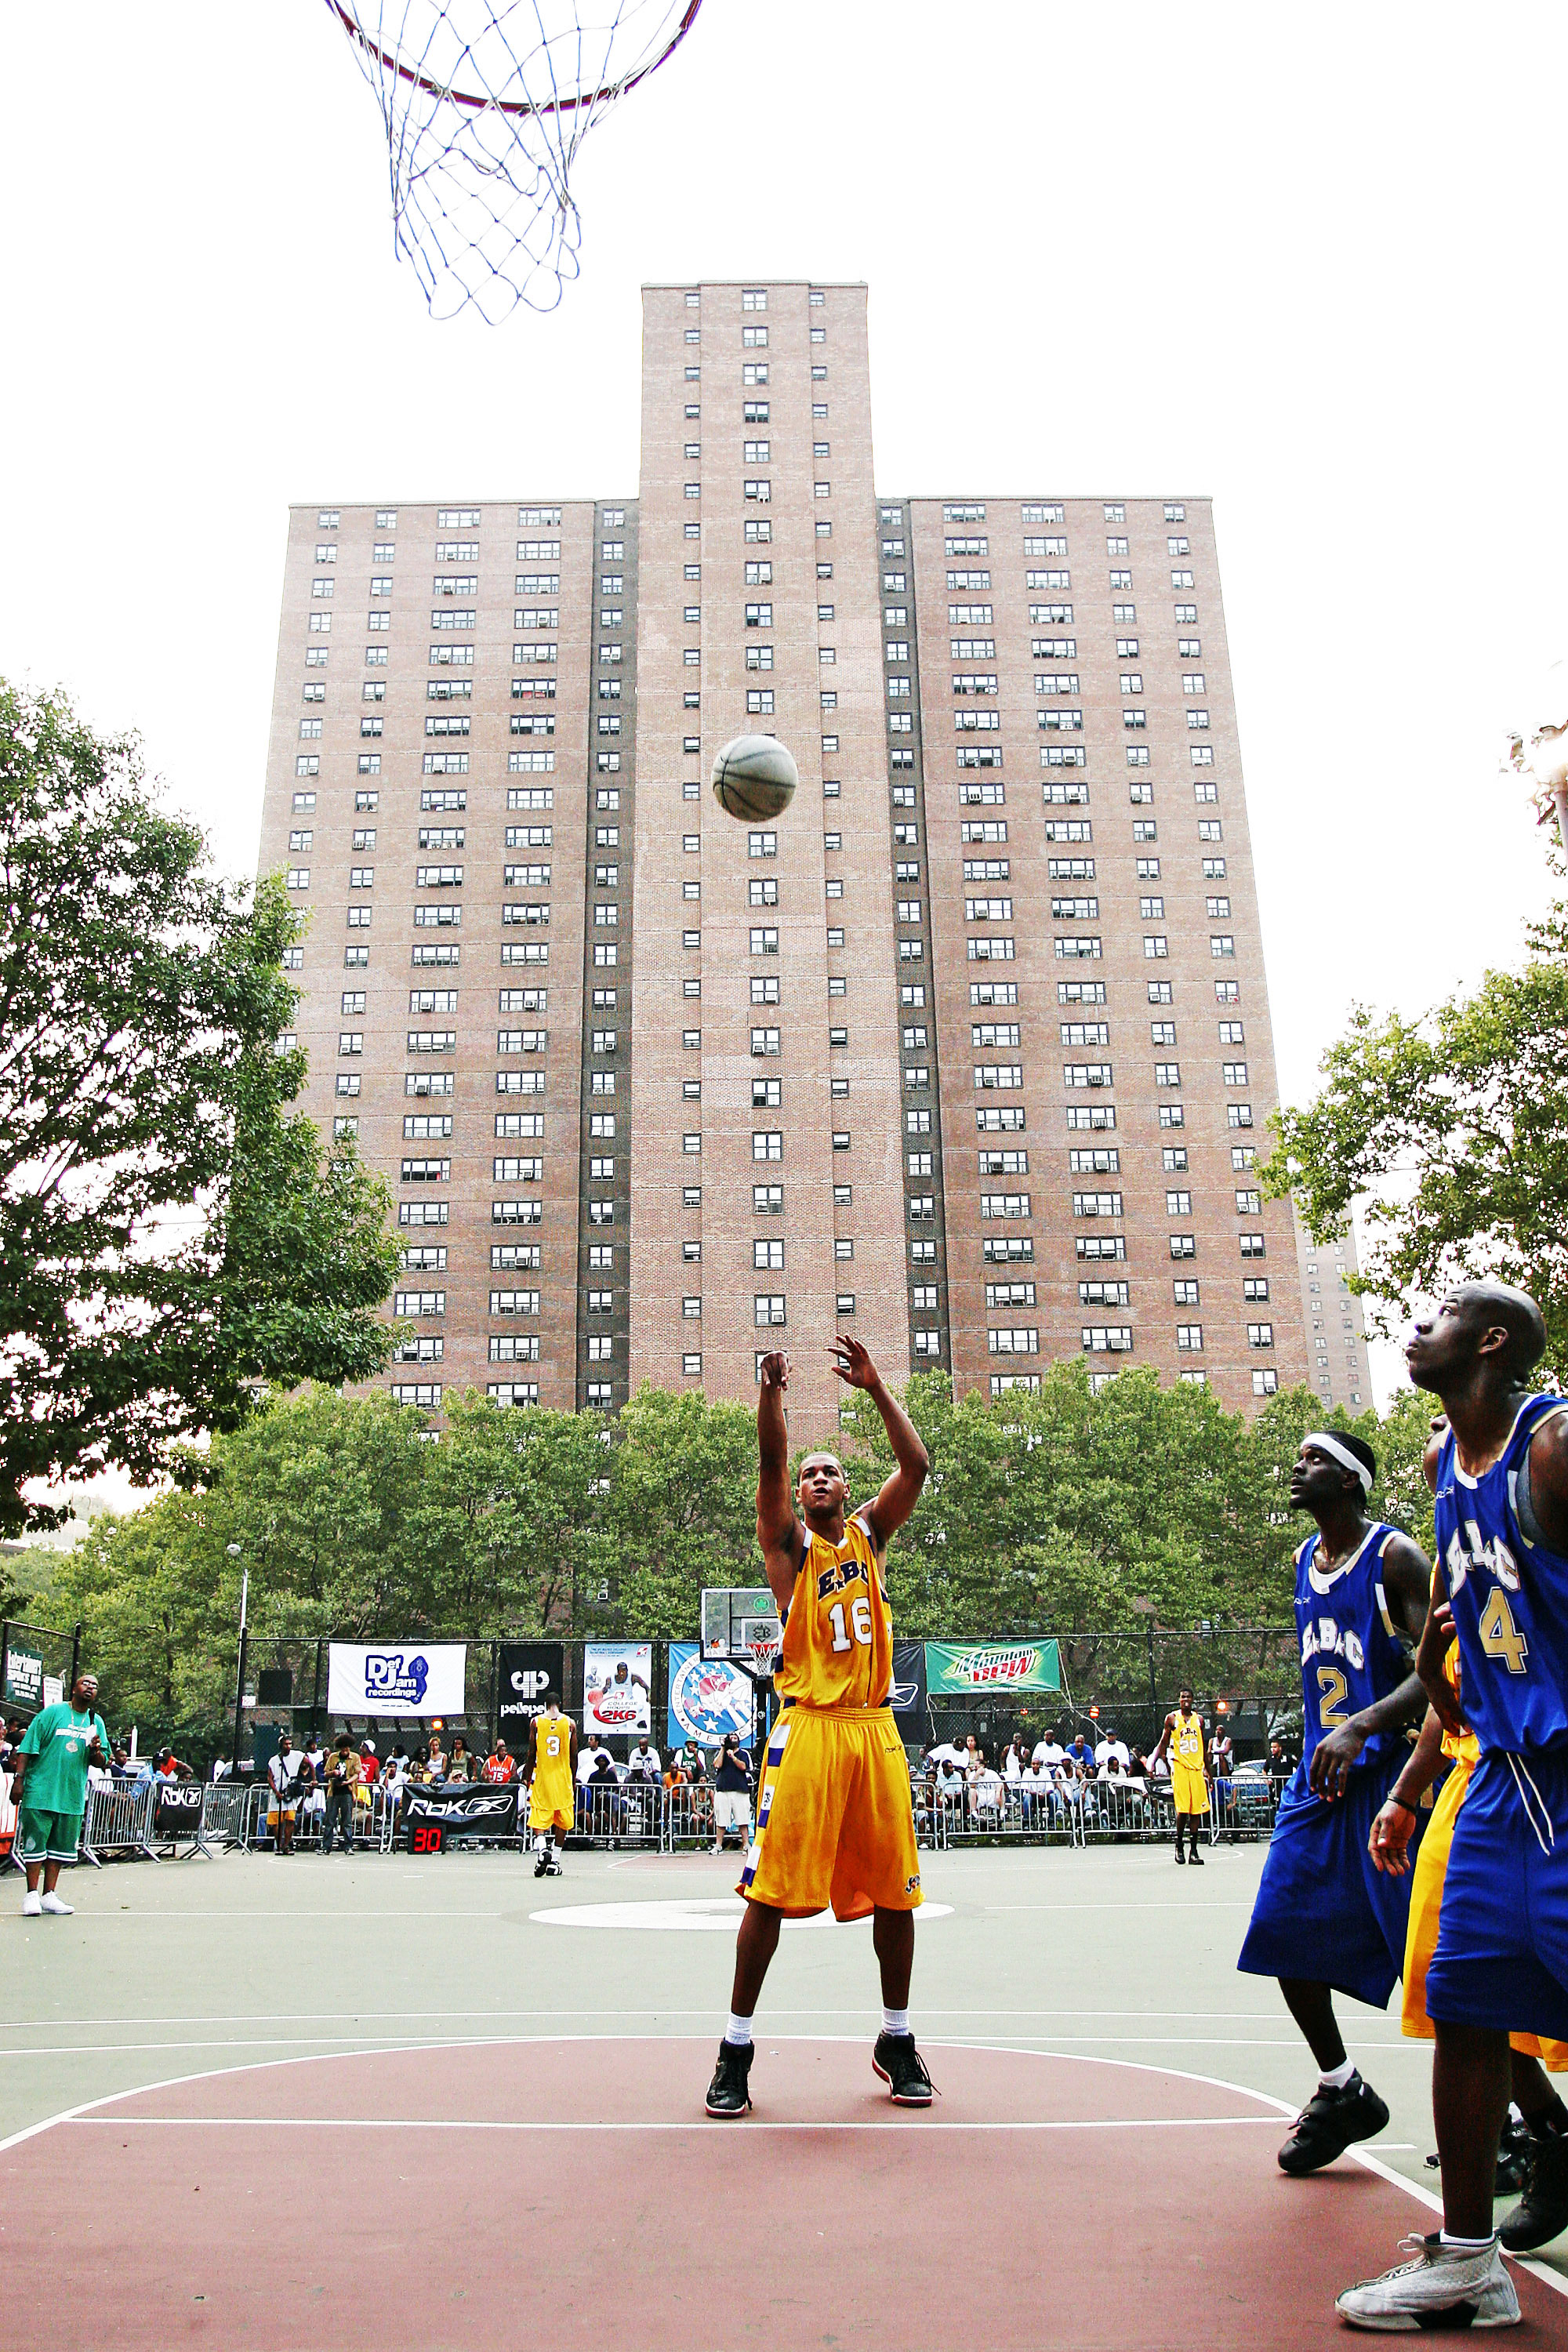 A game at the Entertainer s Basketball Classic at Rucker Park in Harlem 5f603257f3